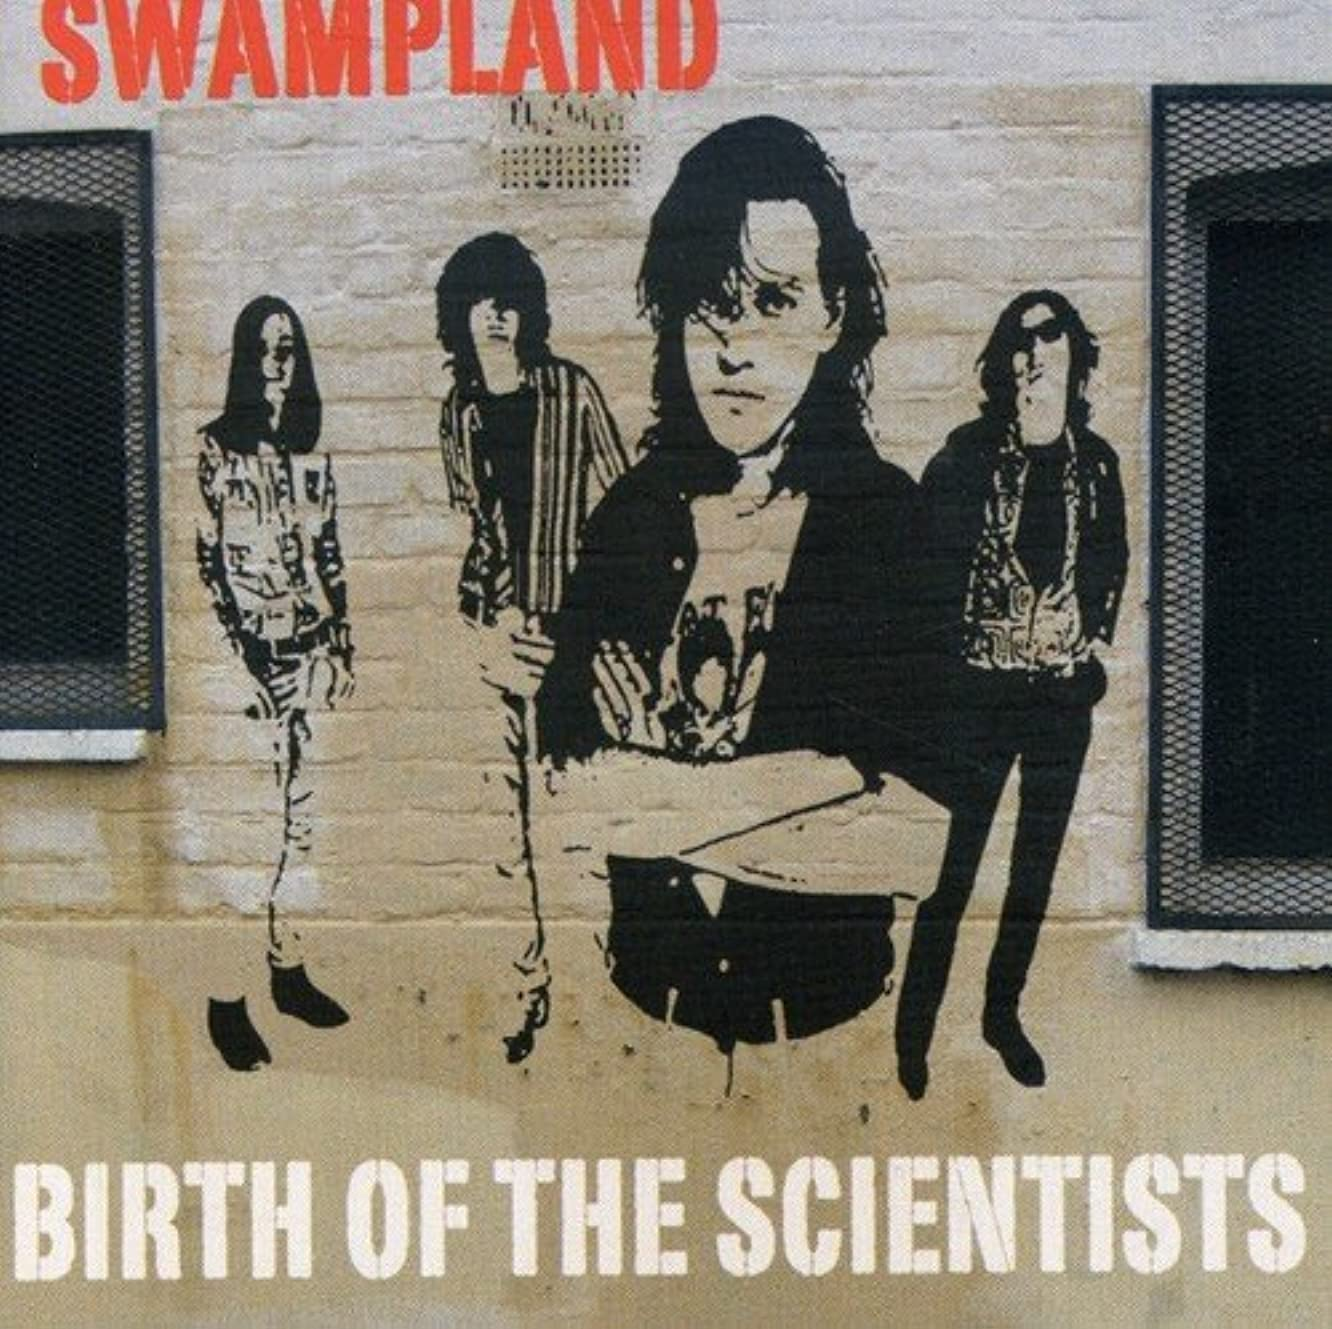 Birth of the Scientists